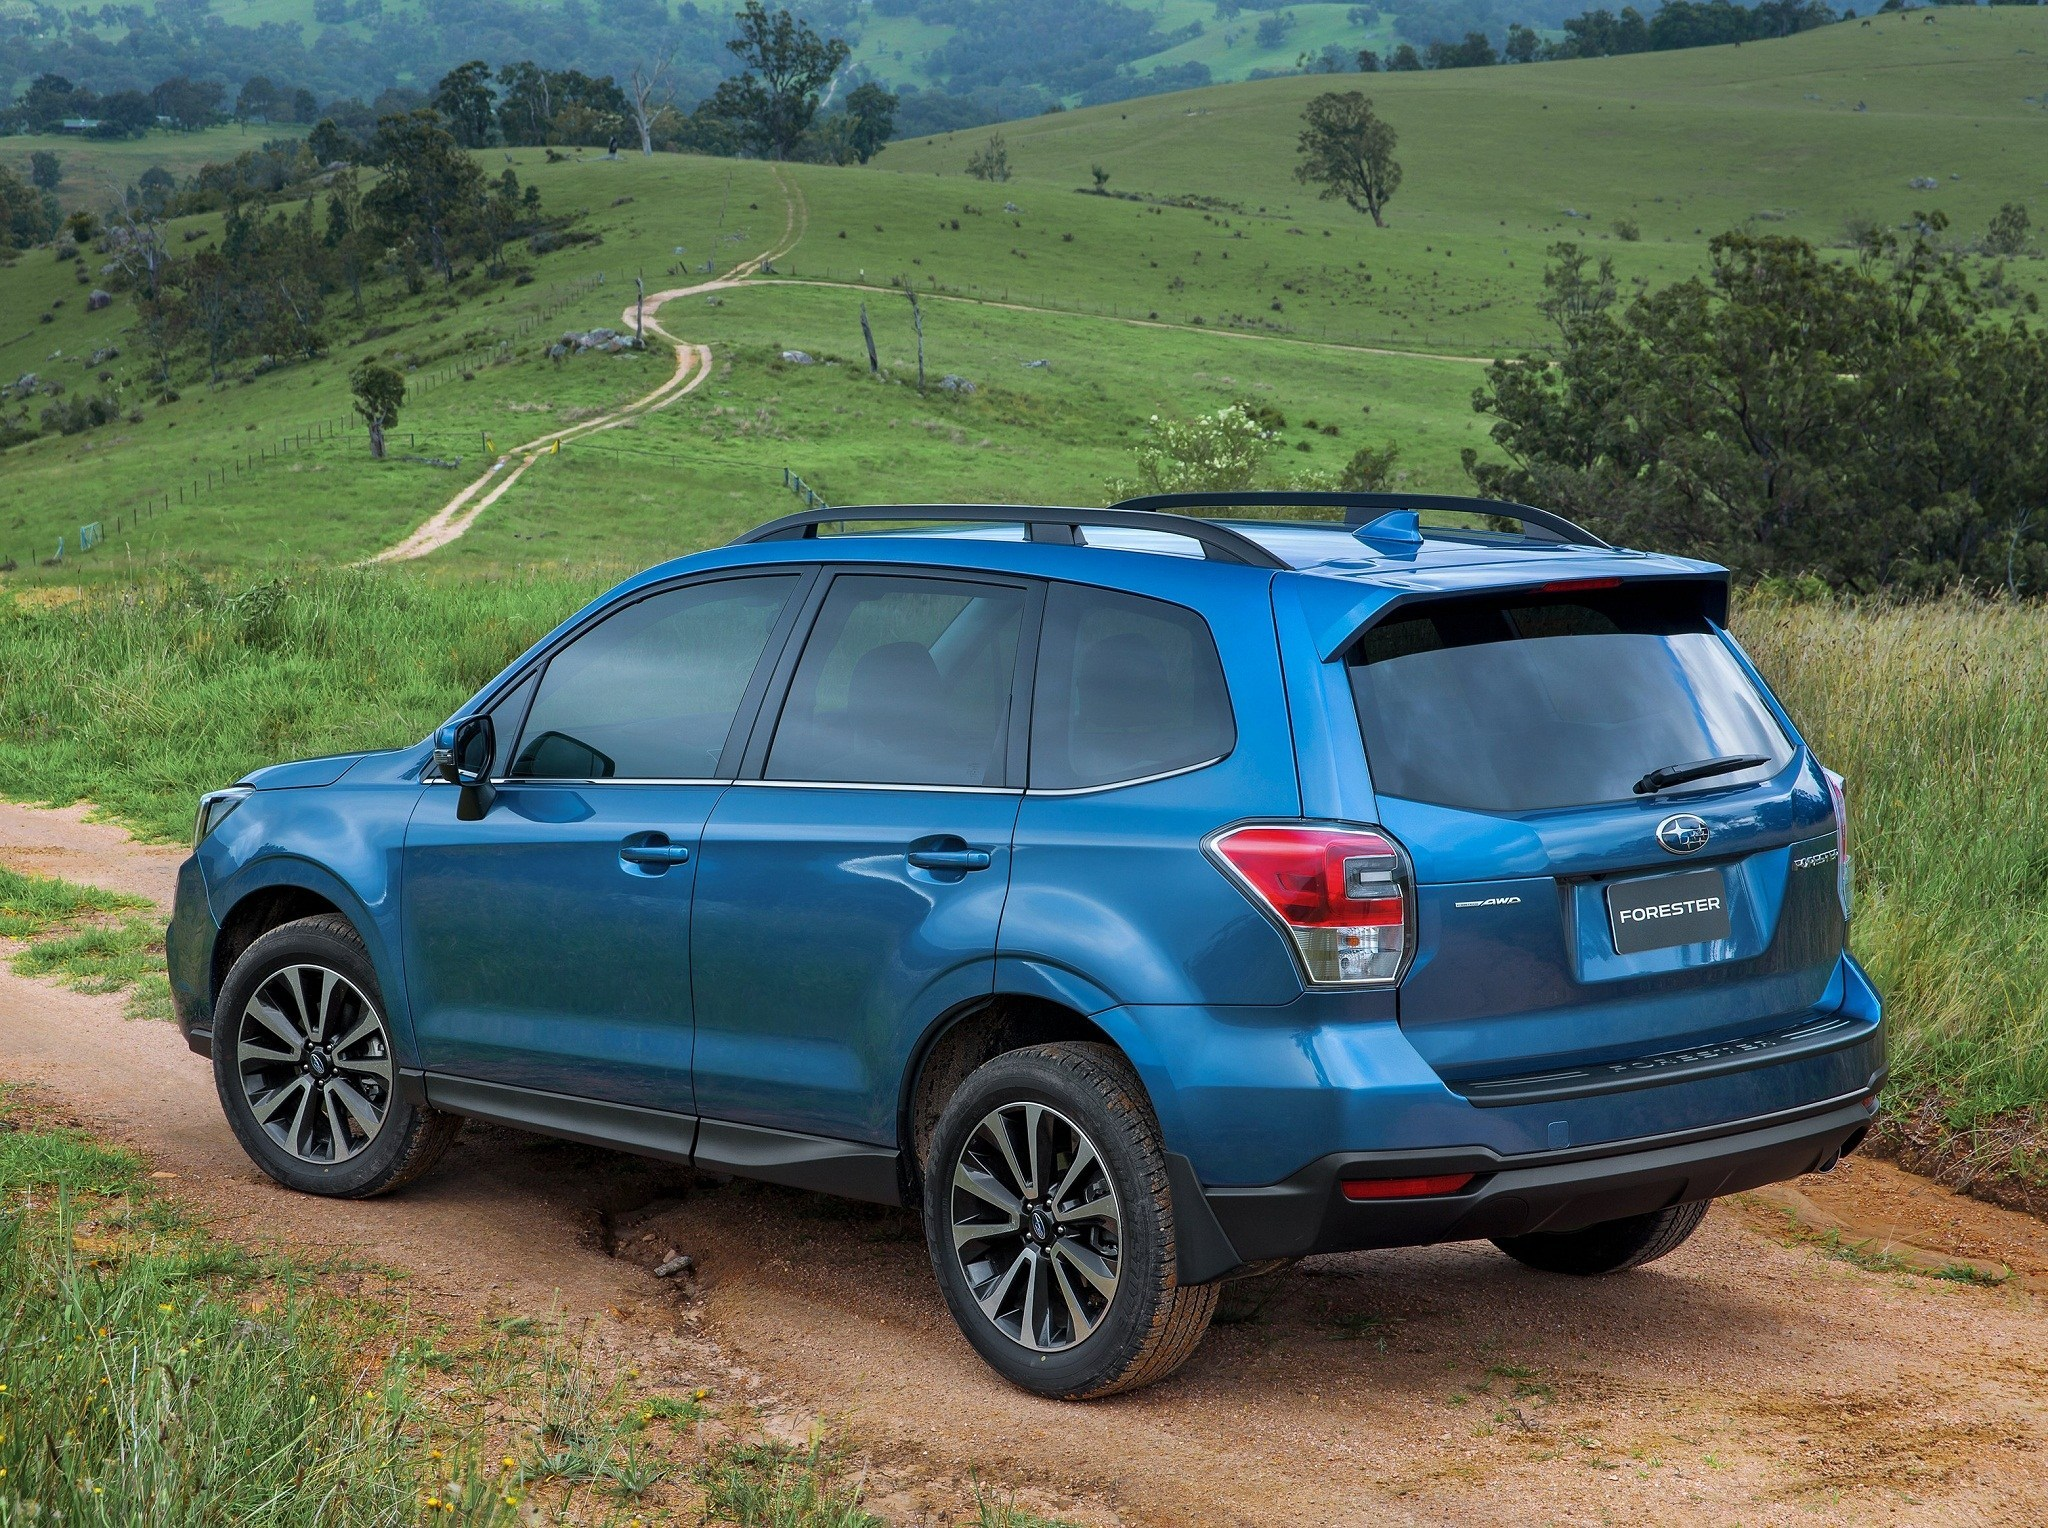 75 New 2020 Subaru Forester Interior